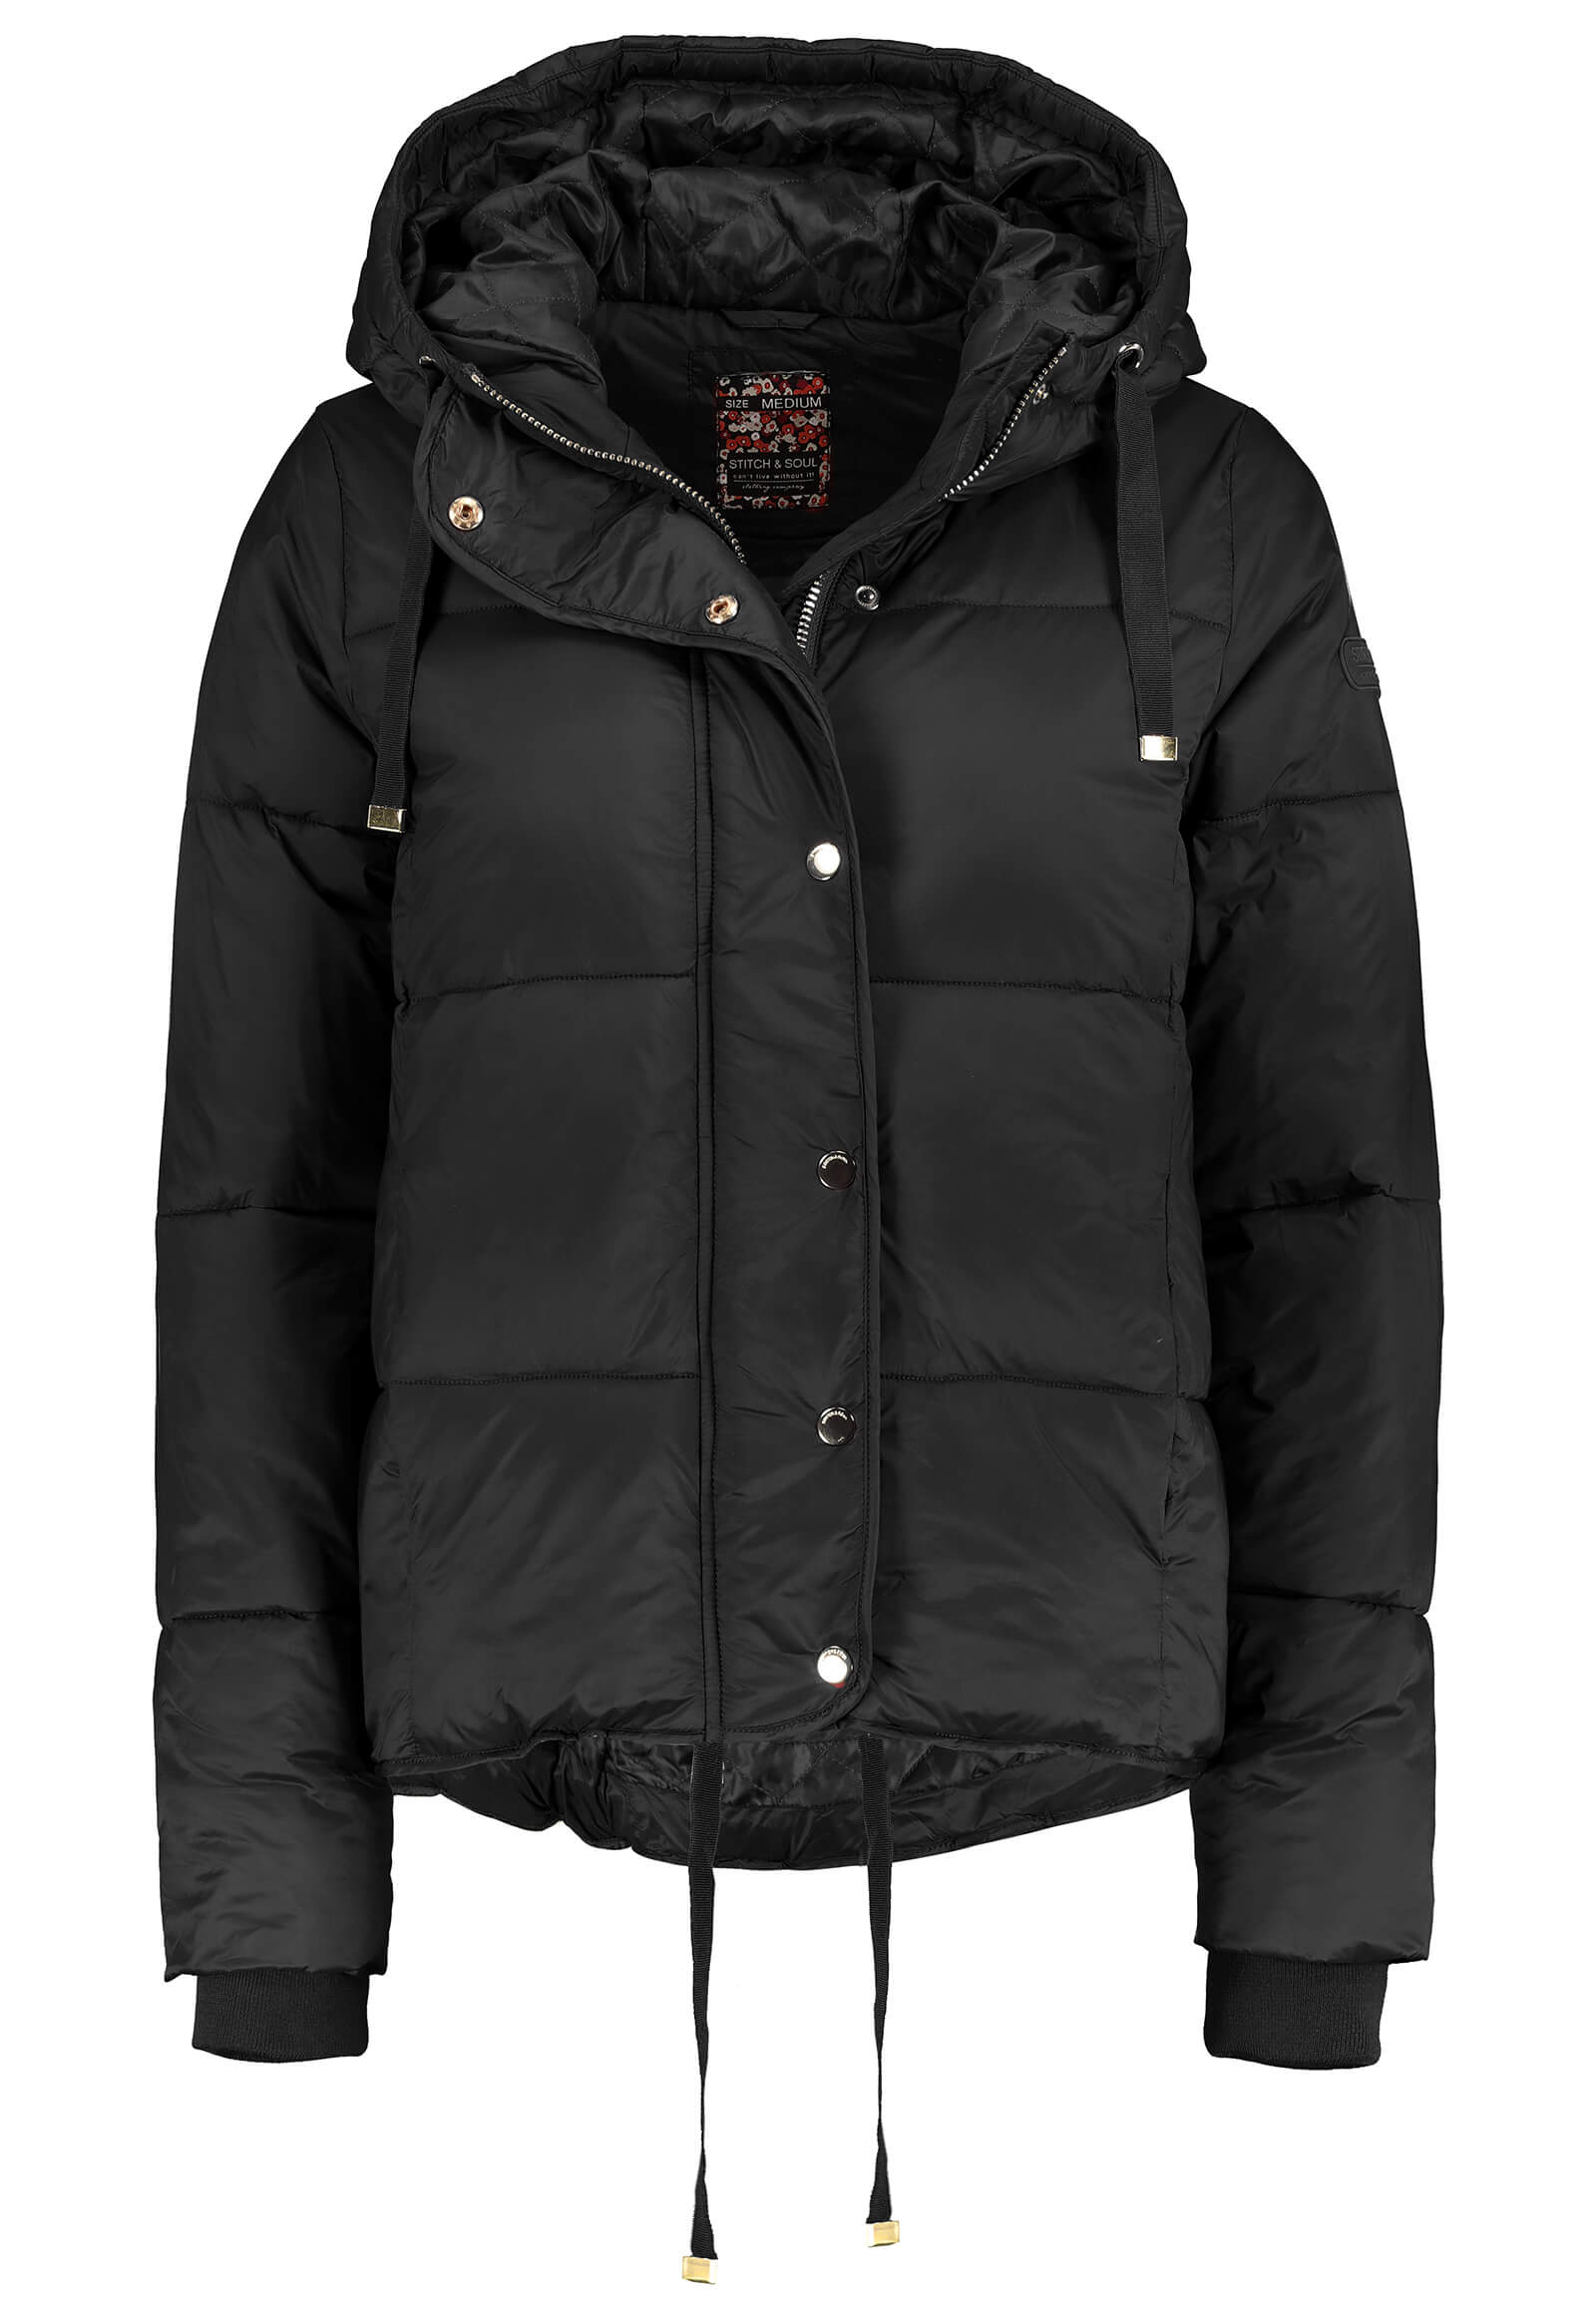 Pufferjacket schwarz